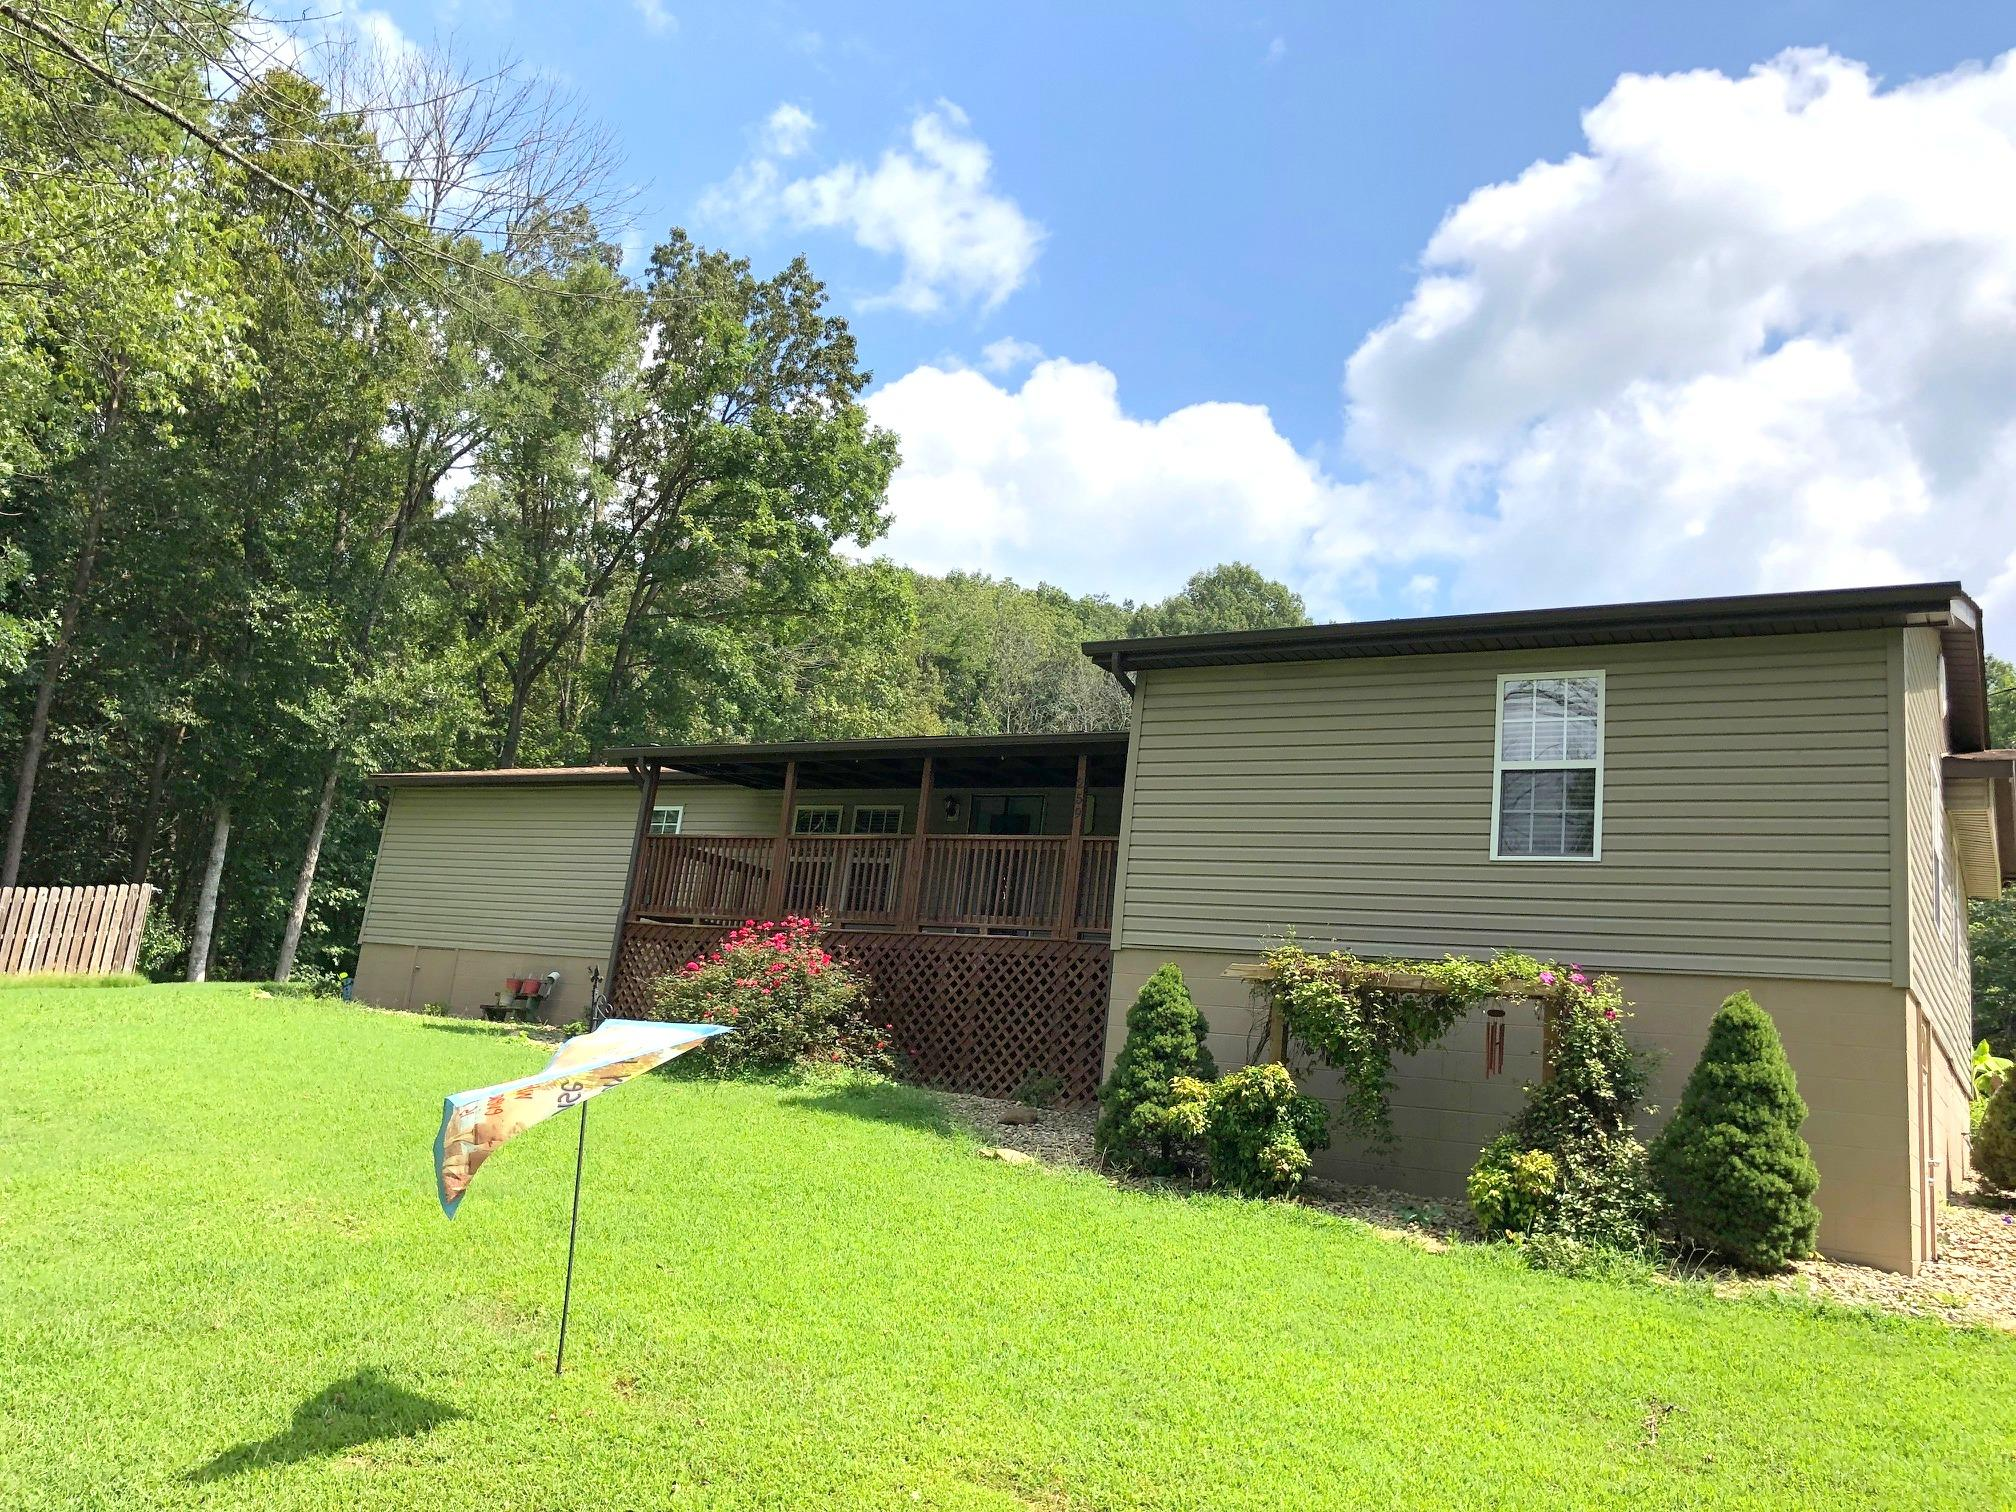 20190809190651067703000000-o Rocky Top anderson county homes for sale